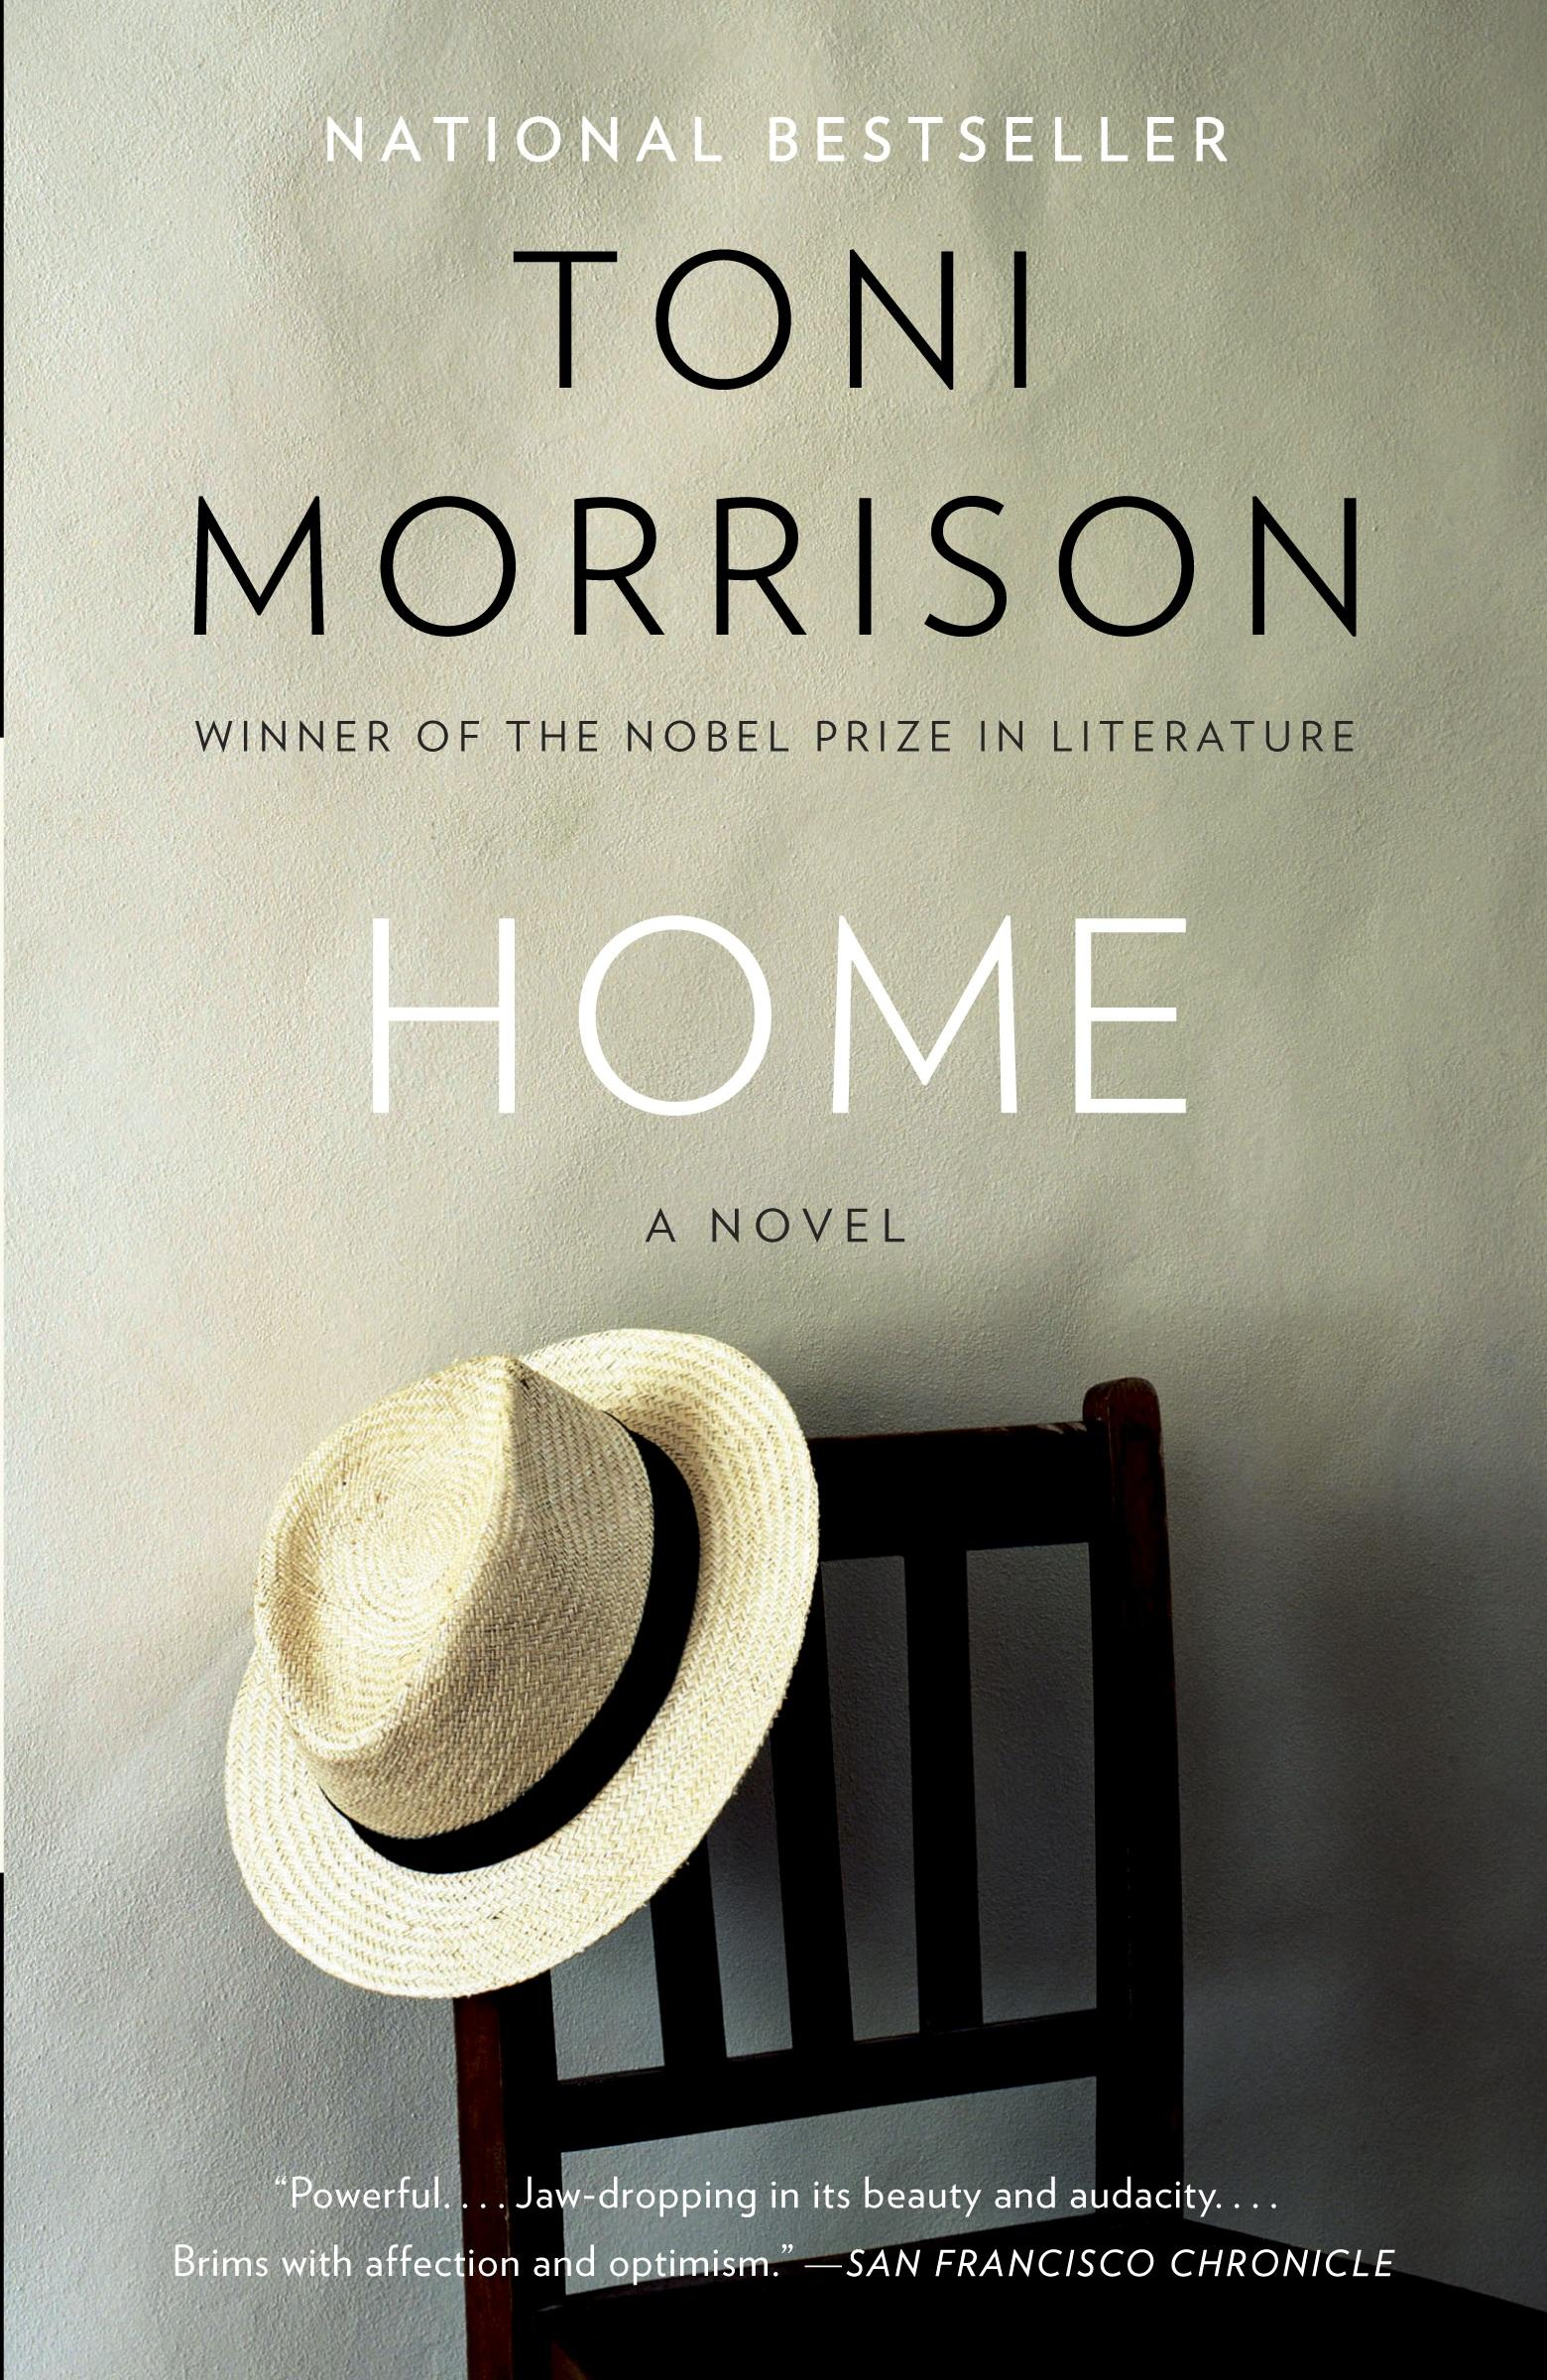 an analysis of the nobel prize in literature and the role of toni morrison Toni morrison a biography by the first african american woman to be honored with the nobel prize in literature and the provides analysis of morrison's.